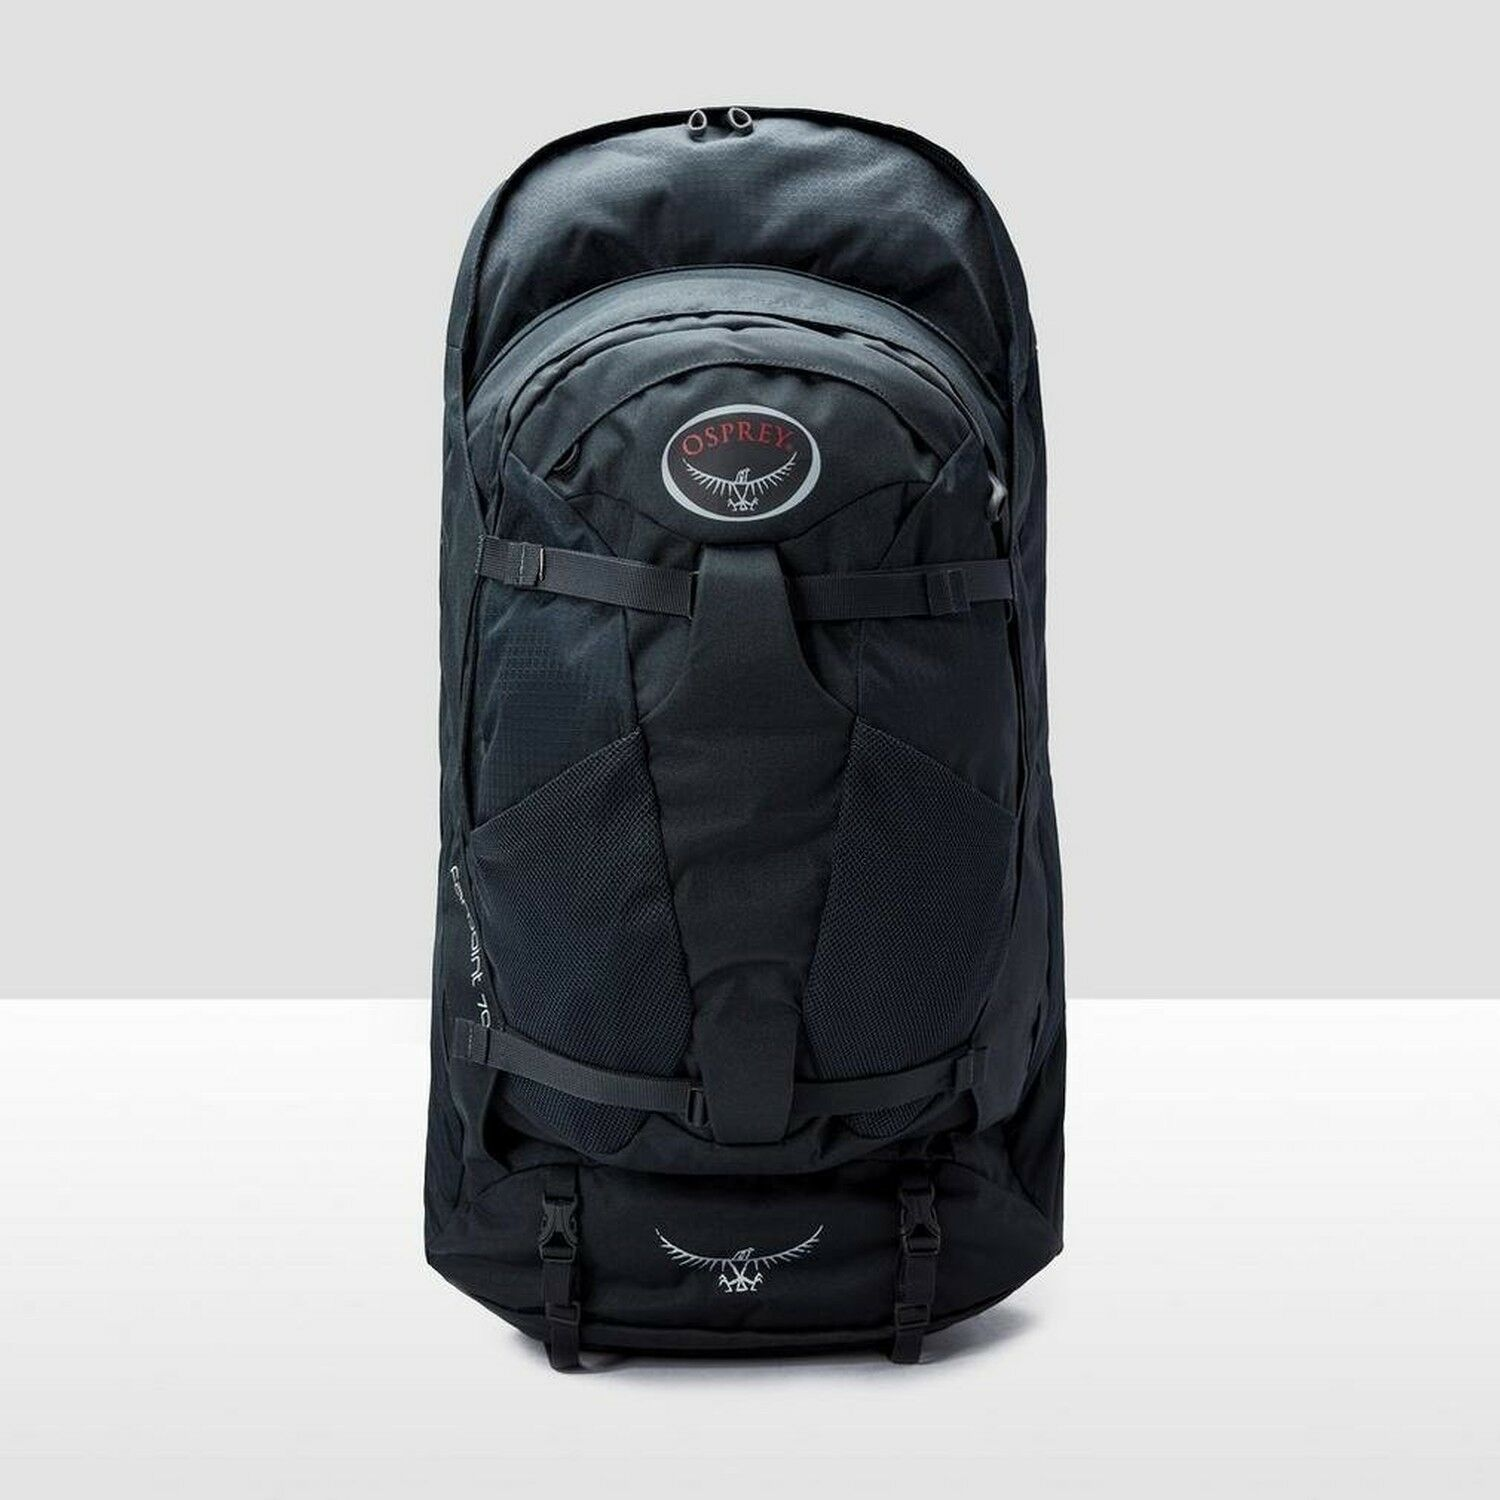 c75549bfd05 Osprey Farpoint 70 Ultralight Travel Backpack Daypack   ReGreen ...